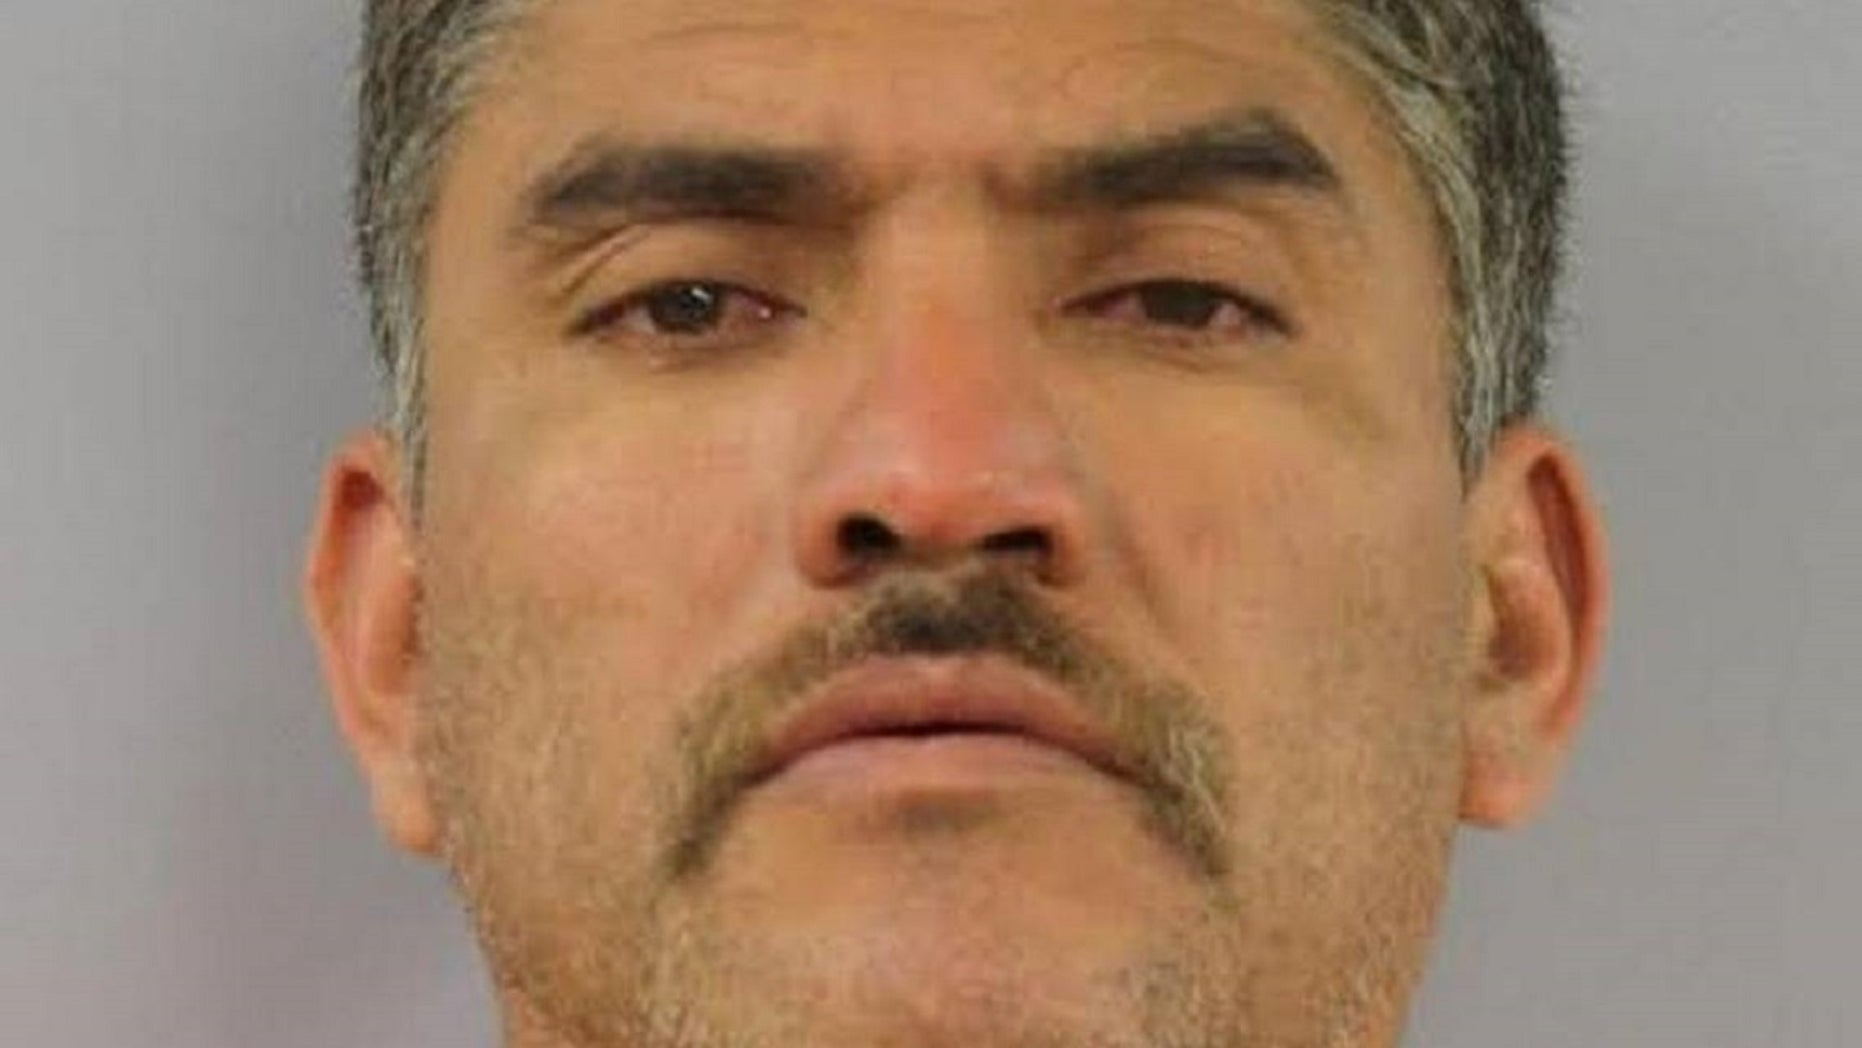 Pablo Serrano-Vitorino, 42, who illegally entered the United States, faces five counts of first-degree murder.